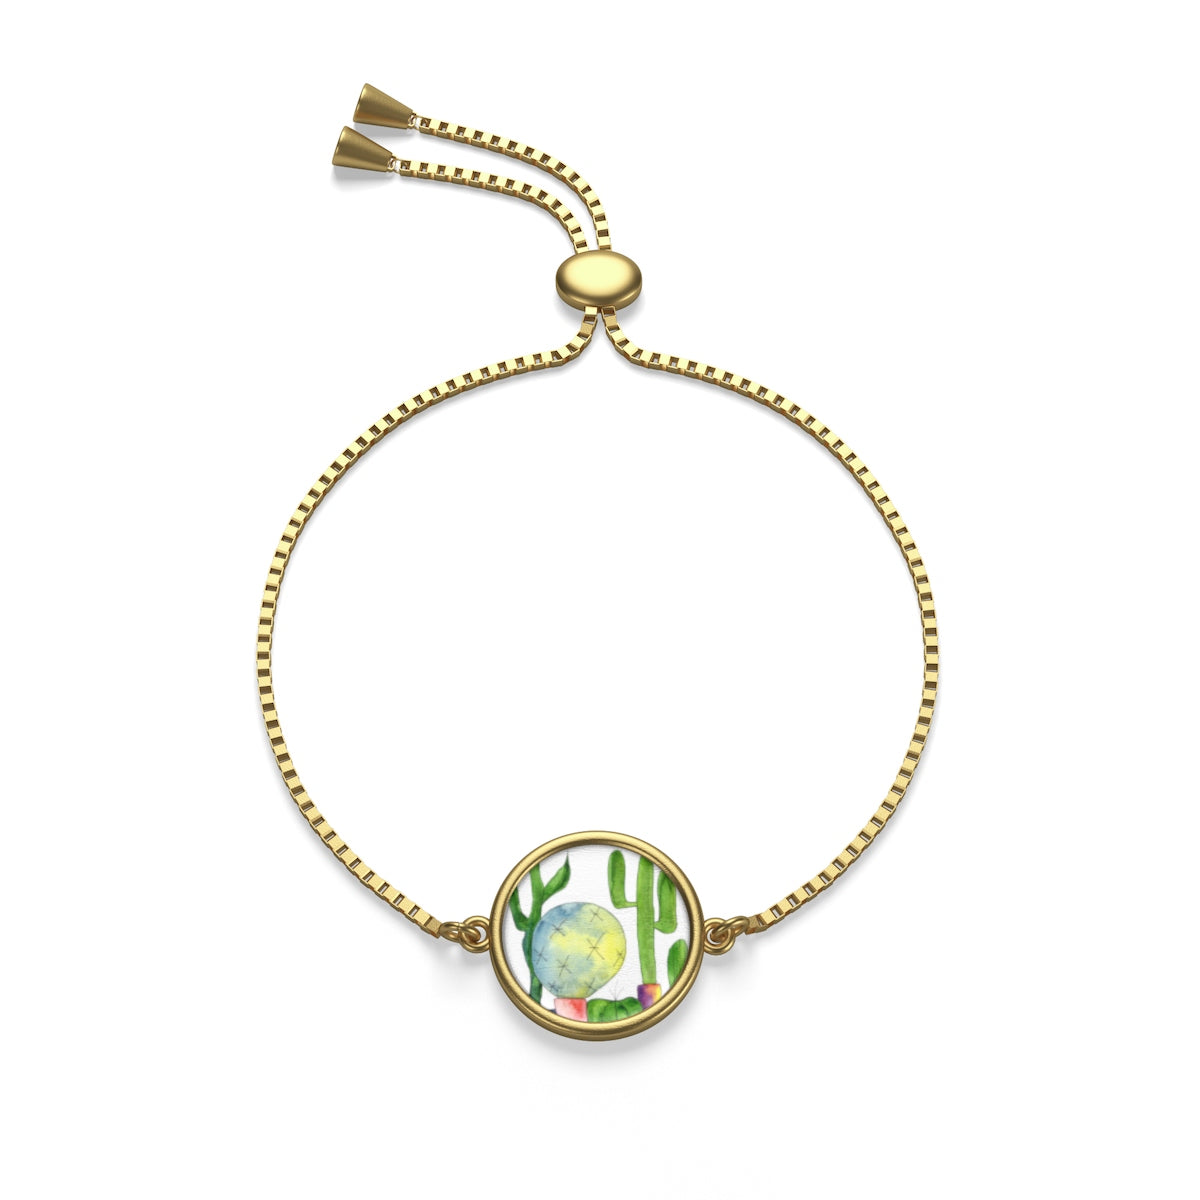 Cactus Family E Box Chain Bracelet, Accessories - Gravitational Pull Art